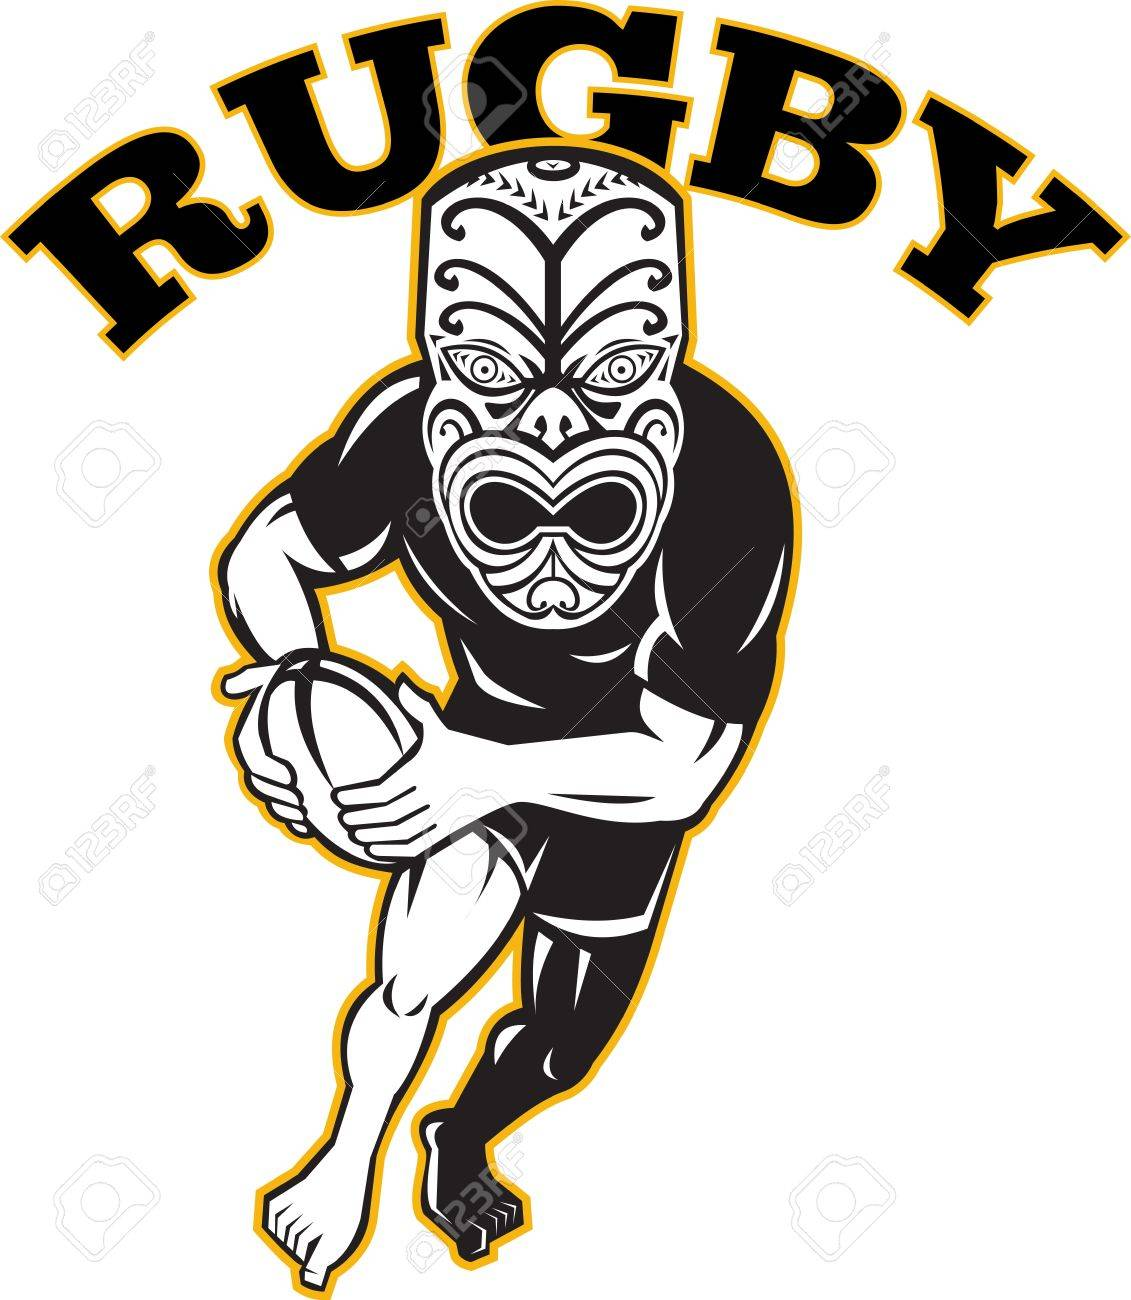 Illustration of a Maori warrior rugby player with mask running with ball facing front on isolated white background Stock Vector - 13541991